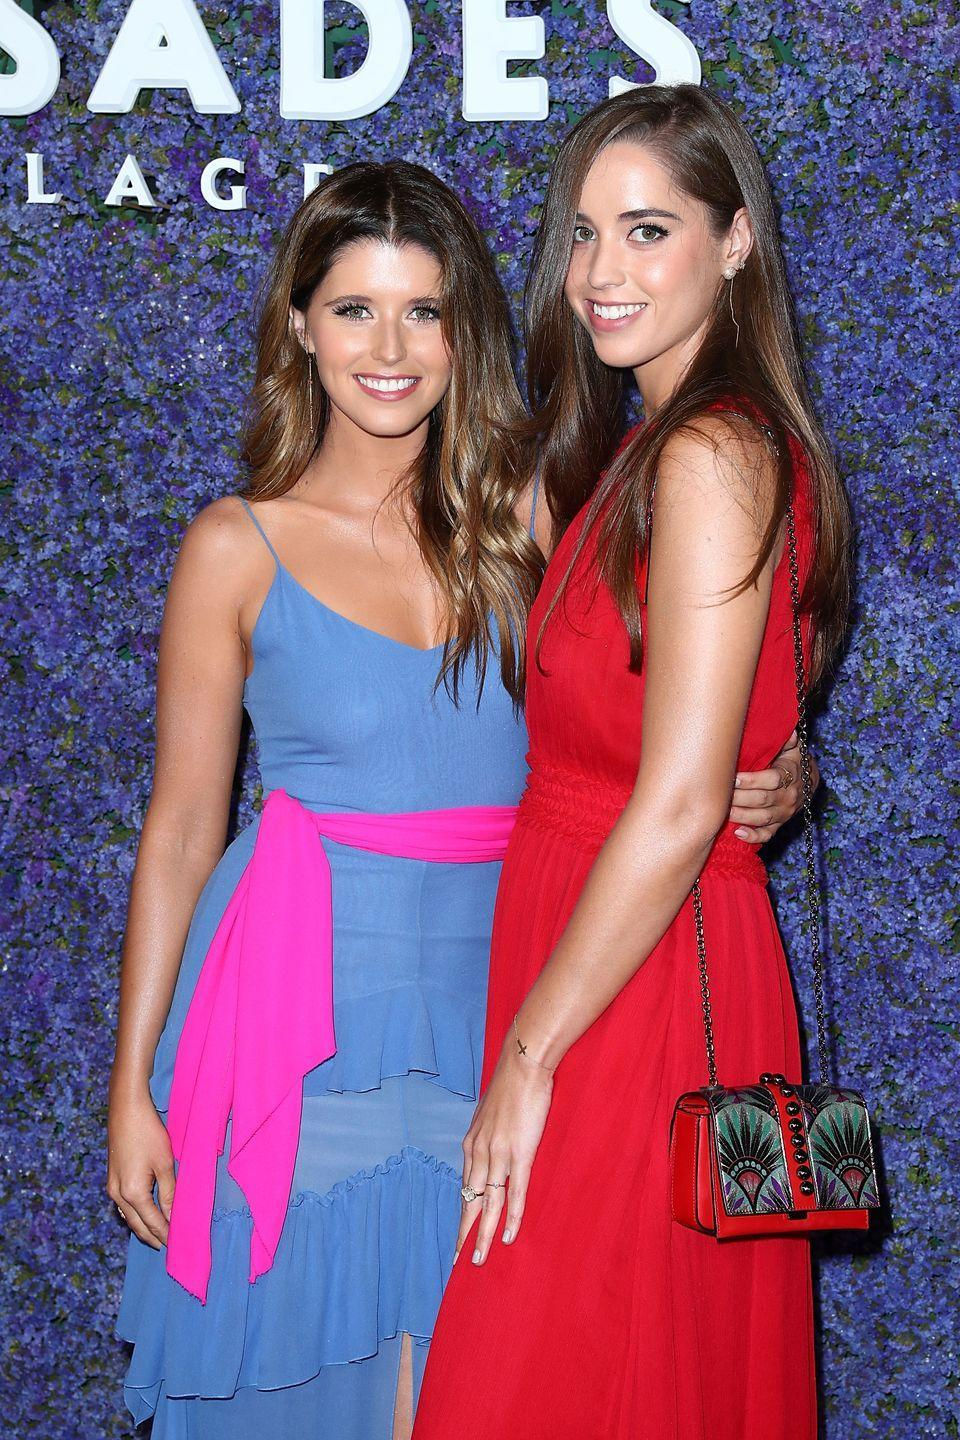 <p>The only daughters of Arnold Schwarzenegger and Maria Shriver, Katherine and Christina not only closely resemble one other, but are dead ringers for their mother. </p>